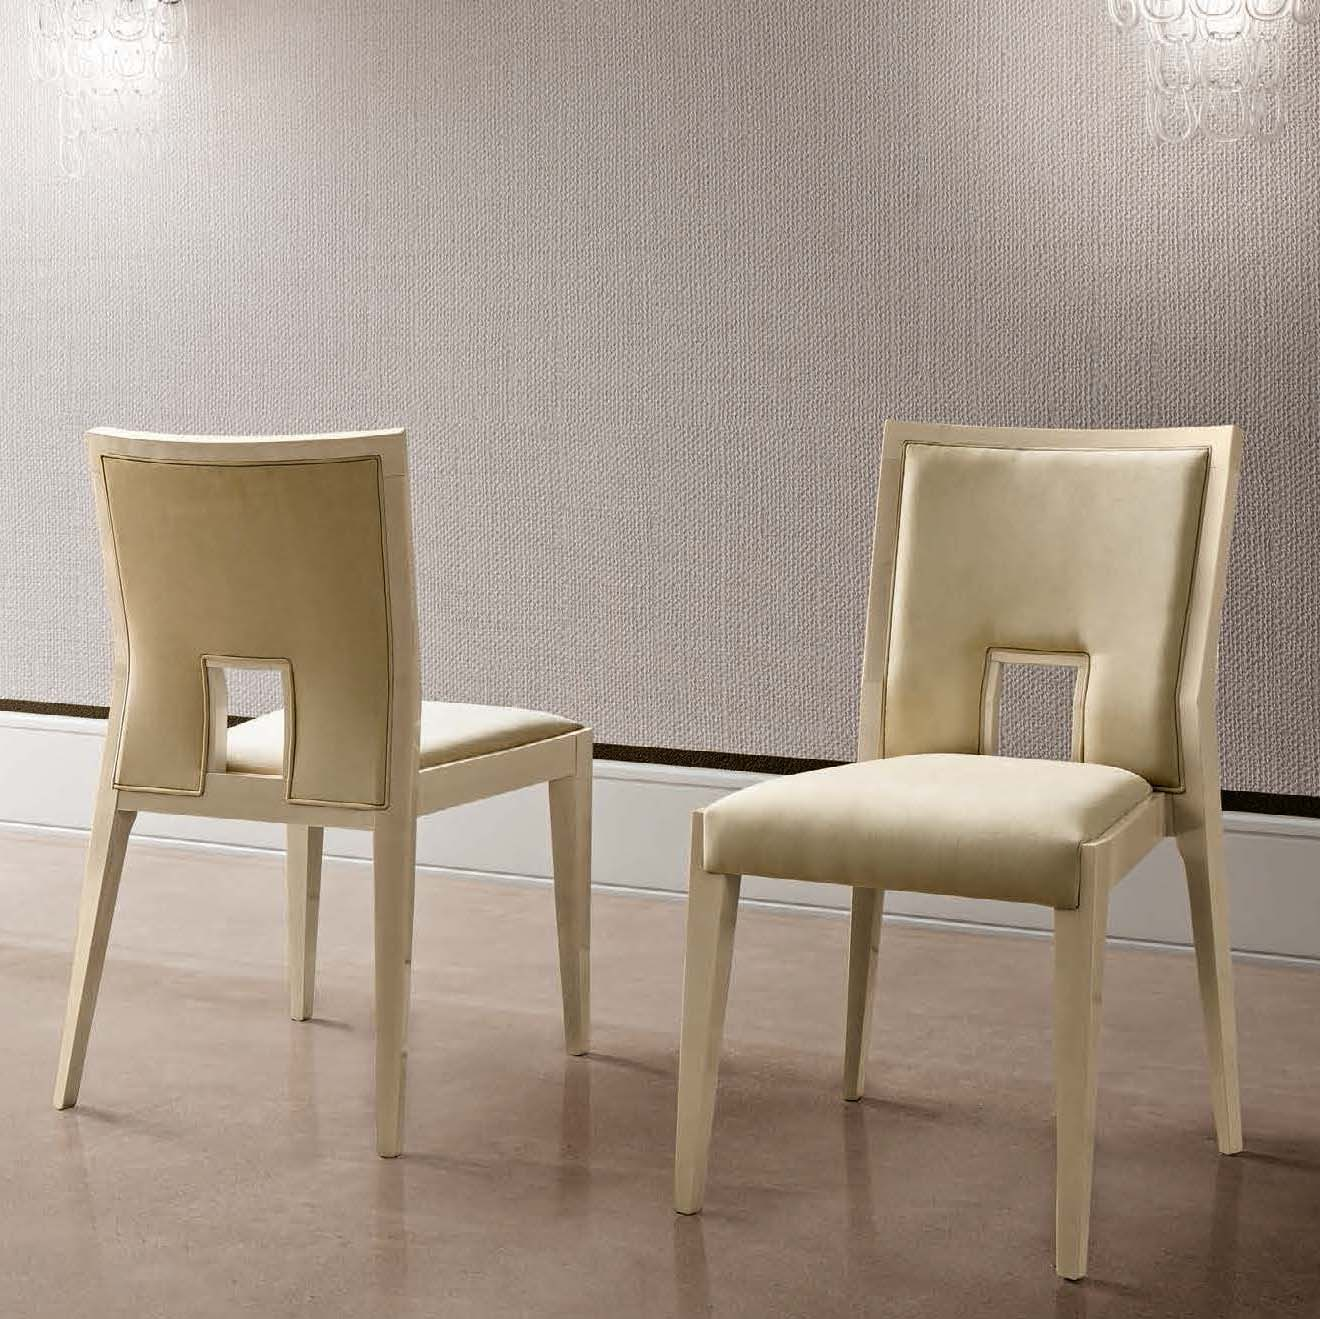 Abrianna Day Cream Nubuck Leather Dining Chair